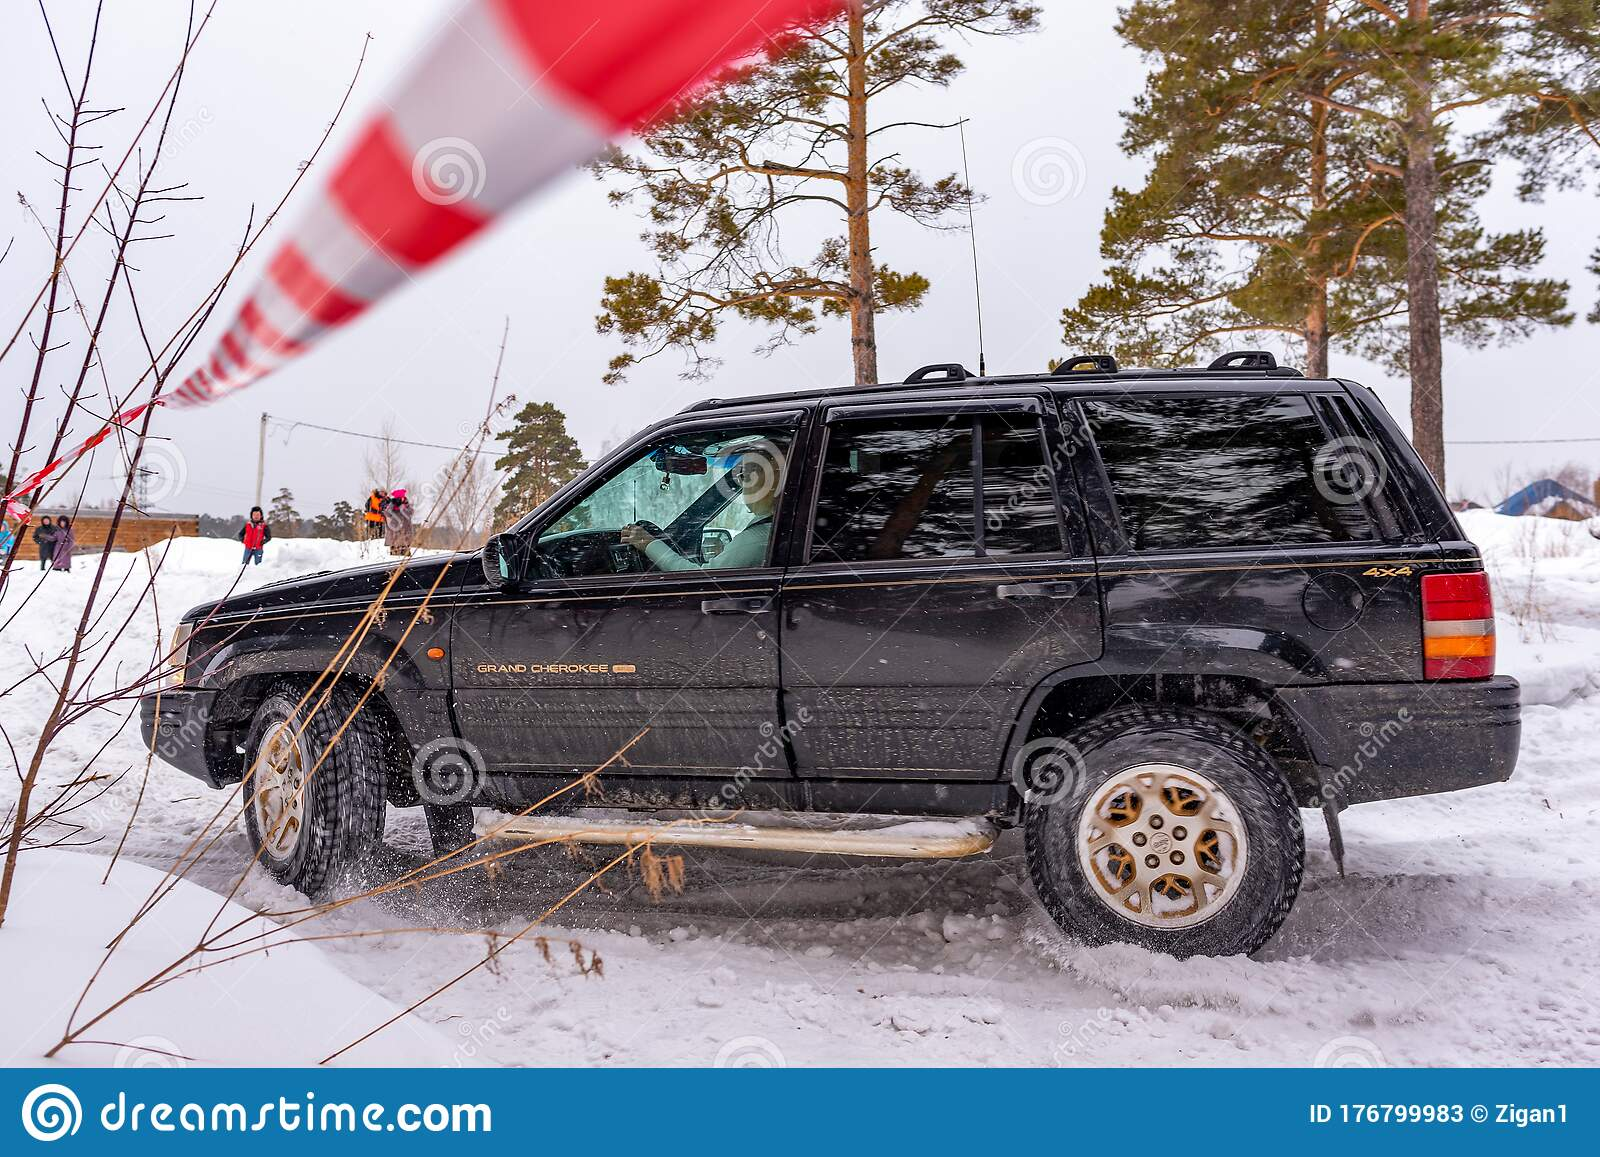 Offroad Suv Jeep Grand Cherokee 4x4 Black Color Rides In Winter On Snow In The Forest Among Pines And Striped Tape Editorial Stock Photo Image Of Pastime Holiday 176799983